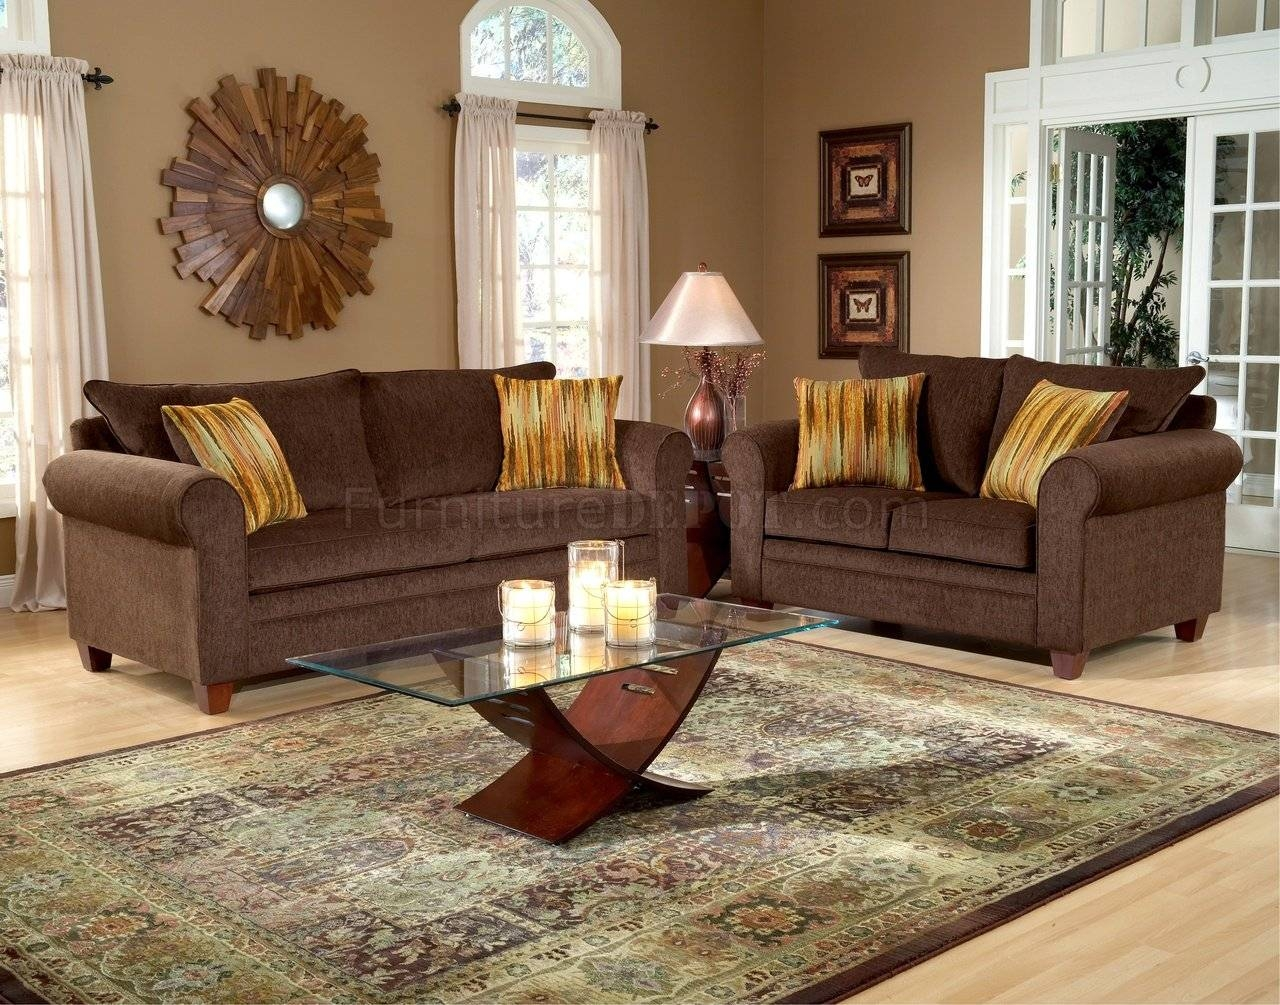 chocolate fabric elegant living room sofa u0026amp loveseat set for elegant fabric sofas image